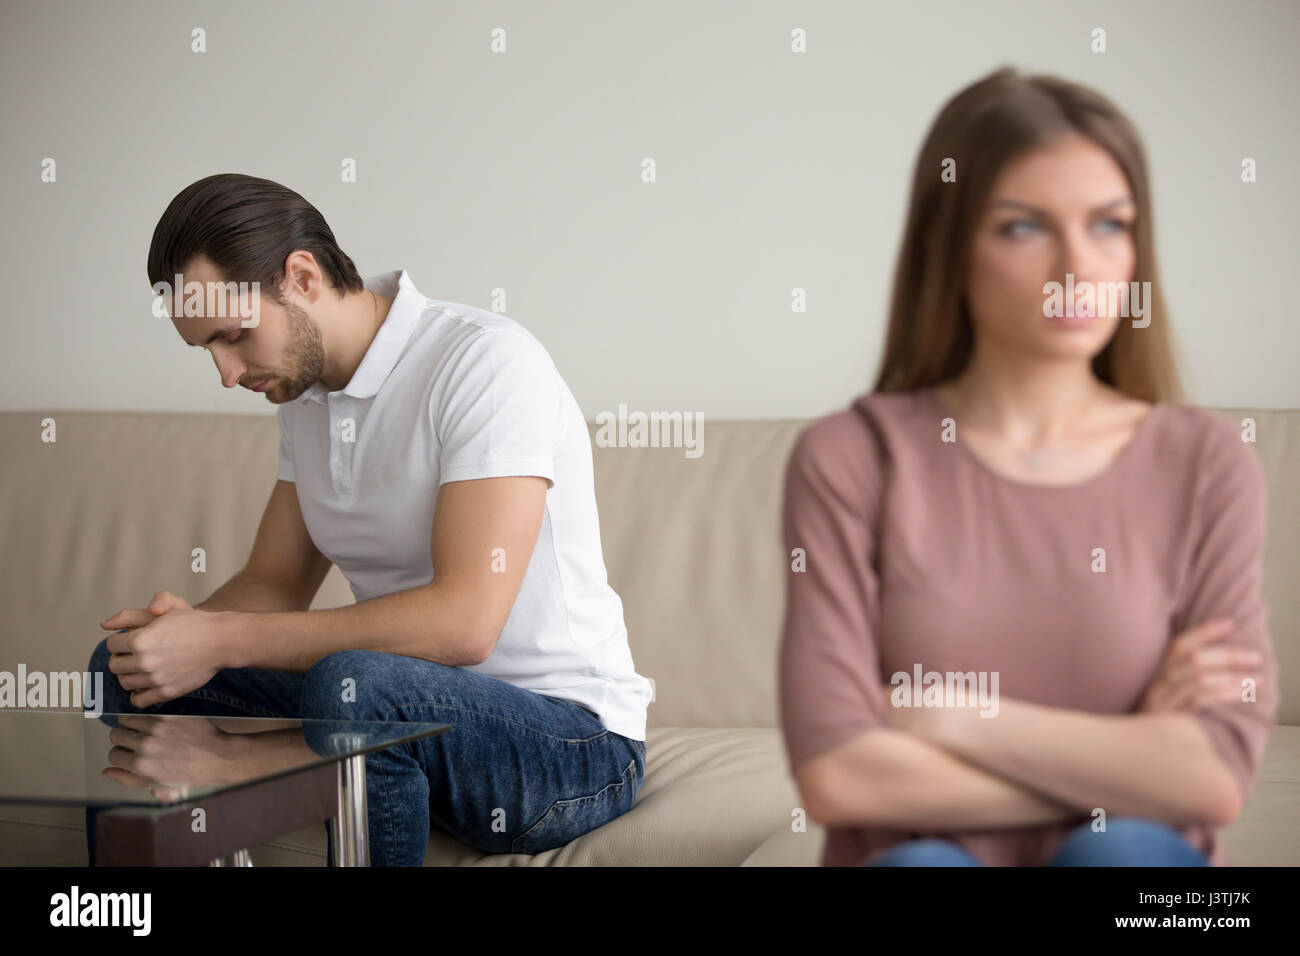 Sad depressed husband offended wife in quarrel, feeling guilty f - Stock Image